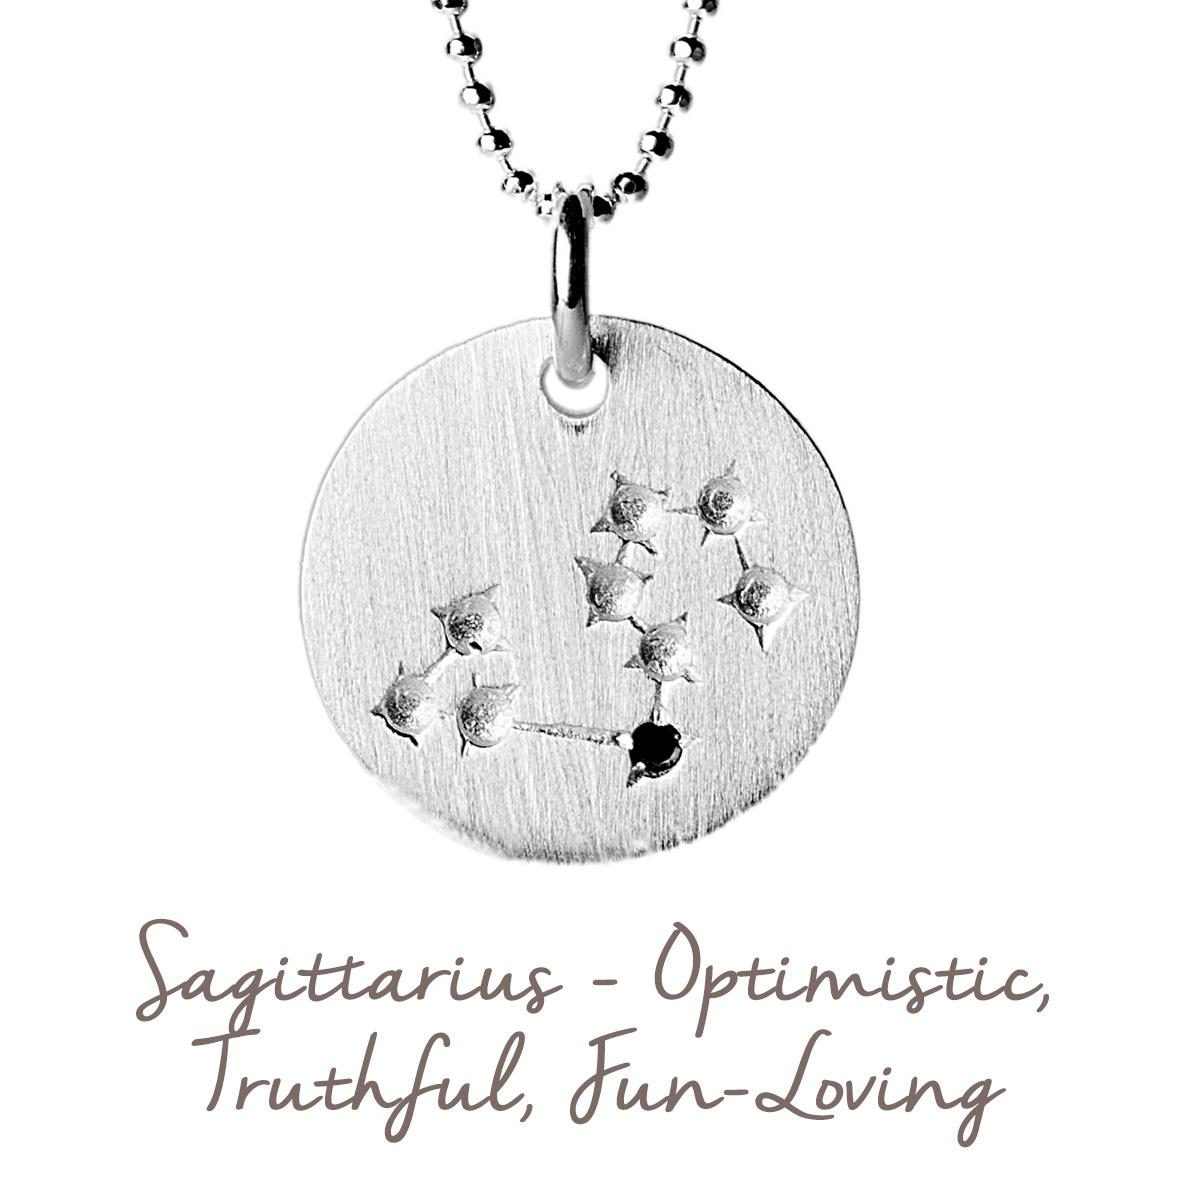 Sagittarius Star Map Necklace | Sterling Silver and Gold on map quotes, map ofitaly, map parts, map accessories, map letters, map artwork, map cambodia travel, map flowers, map throw blanket, map snap, map example, map ofusa, map ofcalifornia, map watches, map tilesets, map pendant jewelry, map clock, map phone case, map with hawaii,